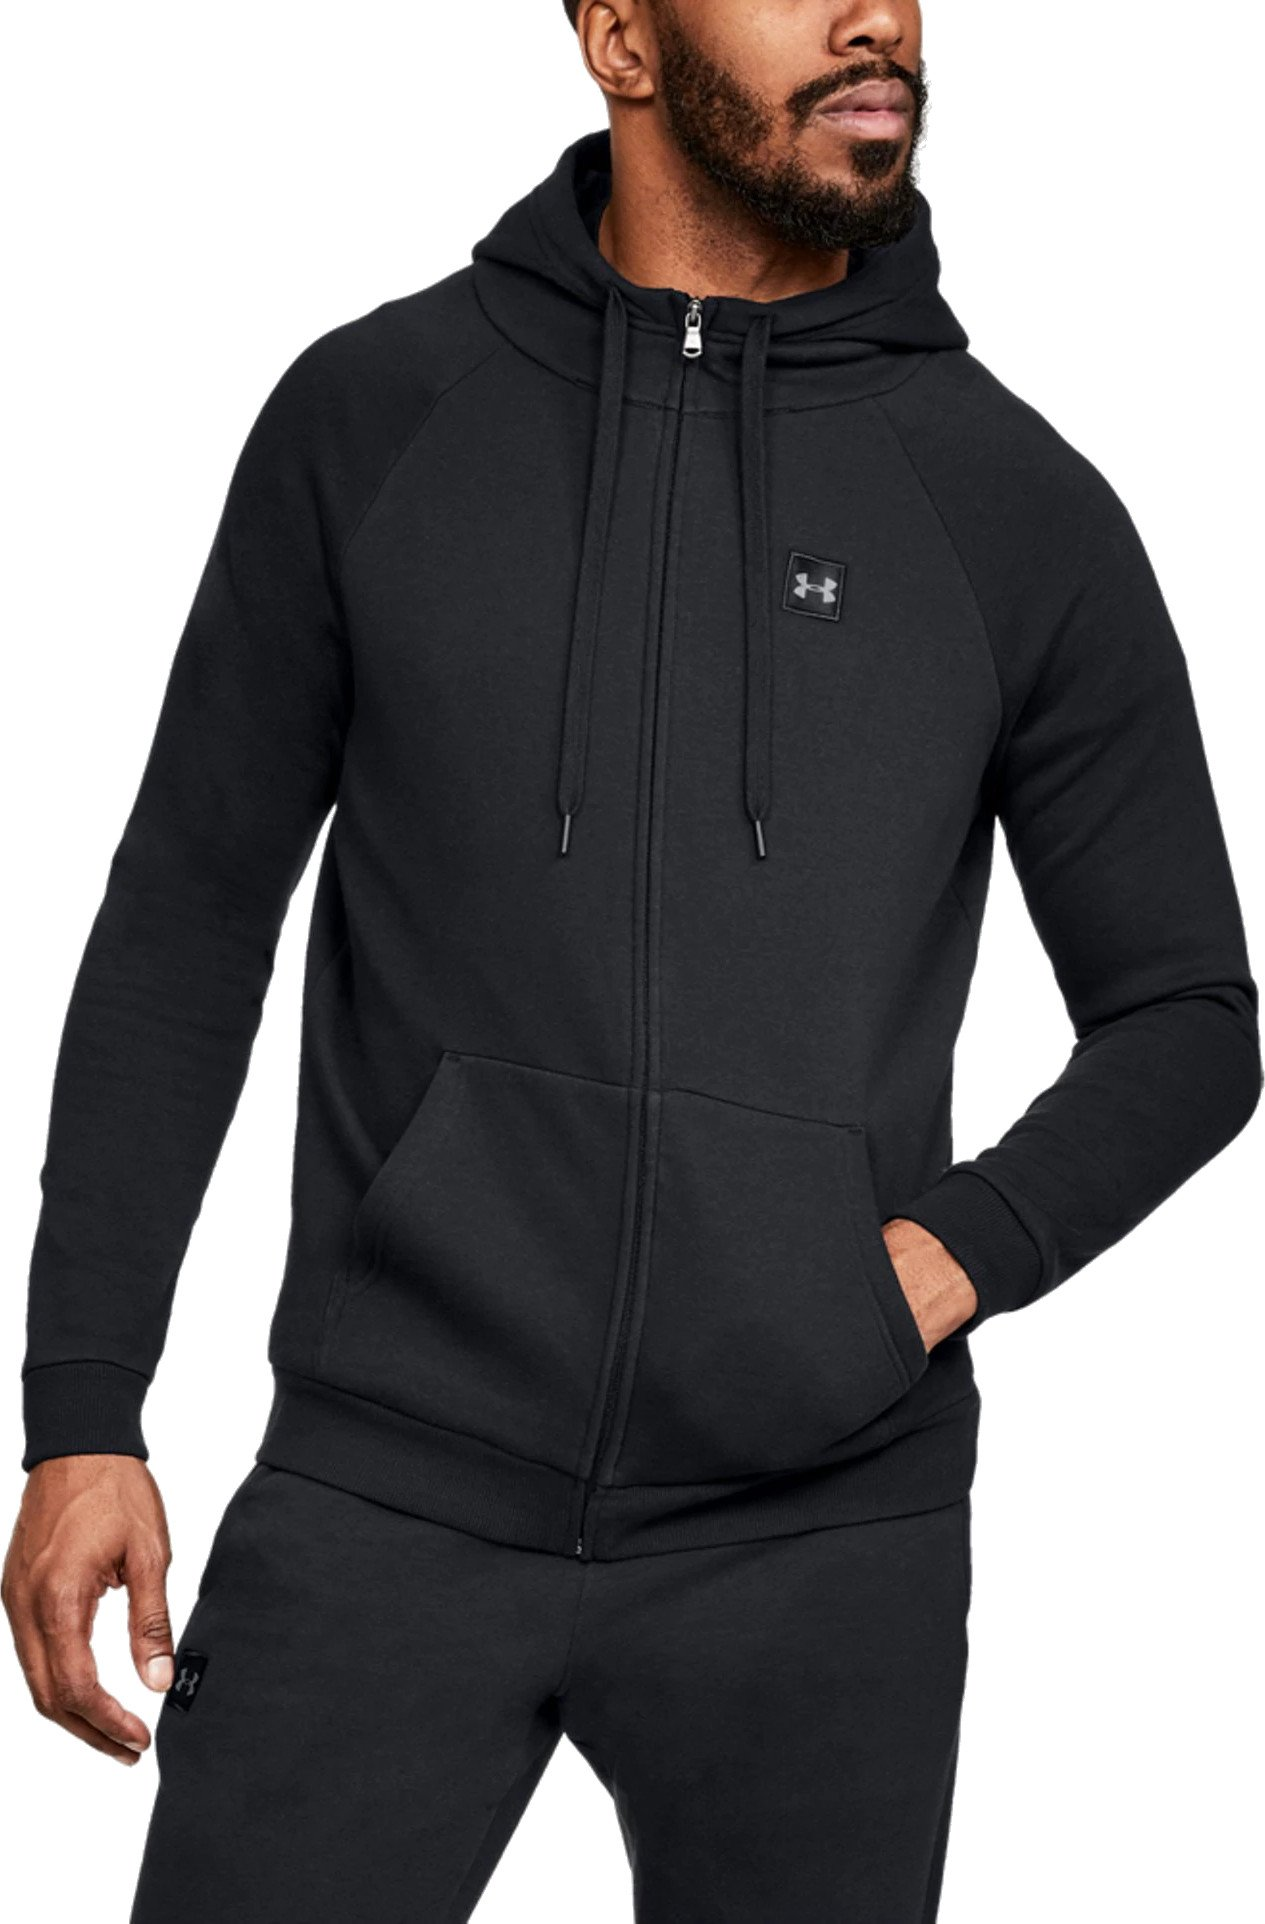 Hooded sweatshirt Under Armour RIVAL FLEECE FZ HOODIE